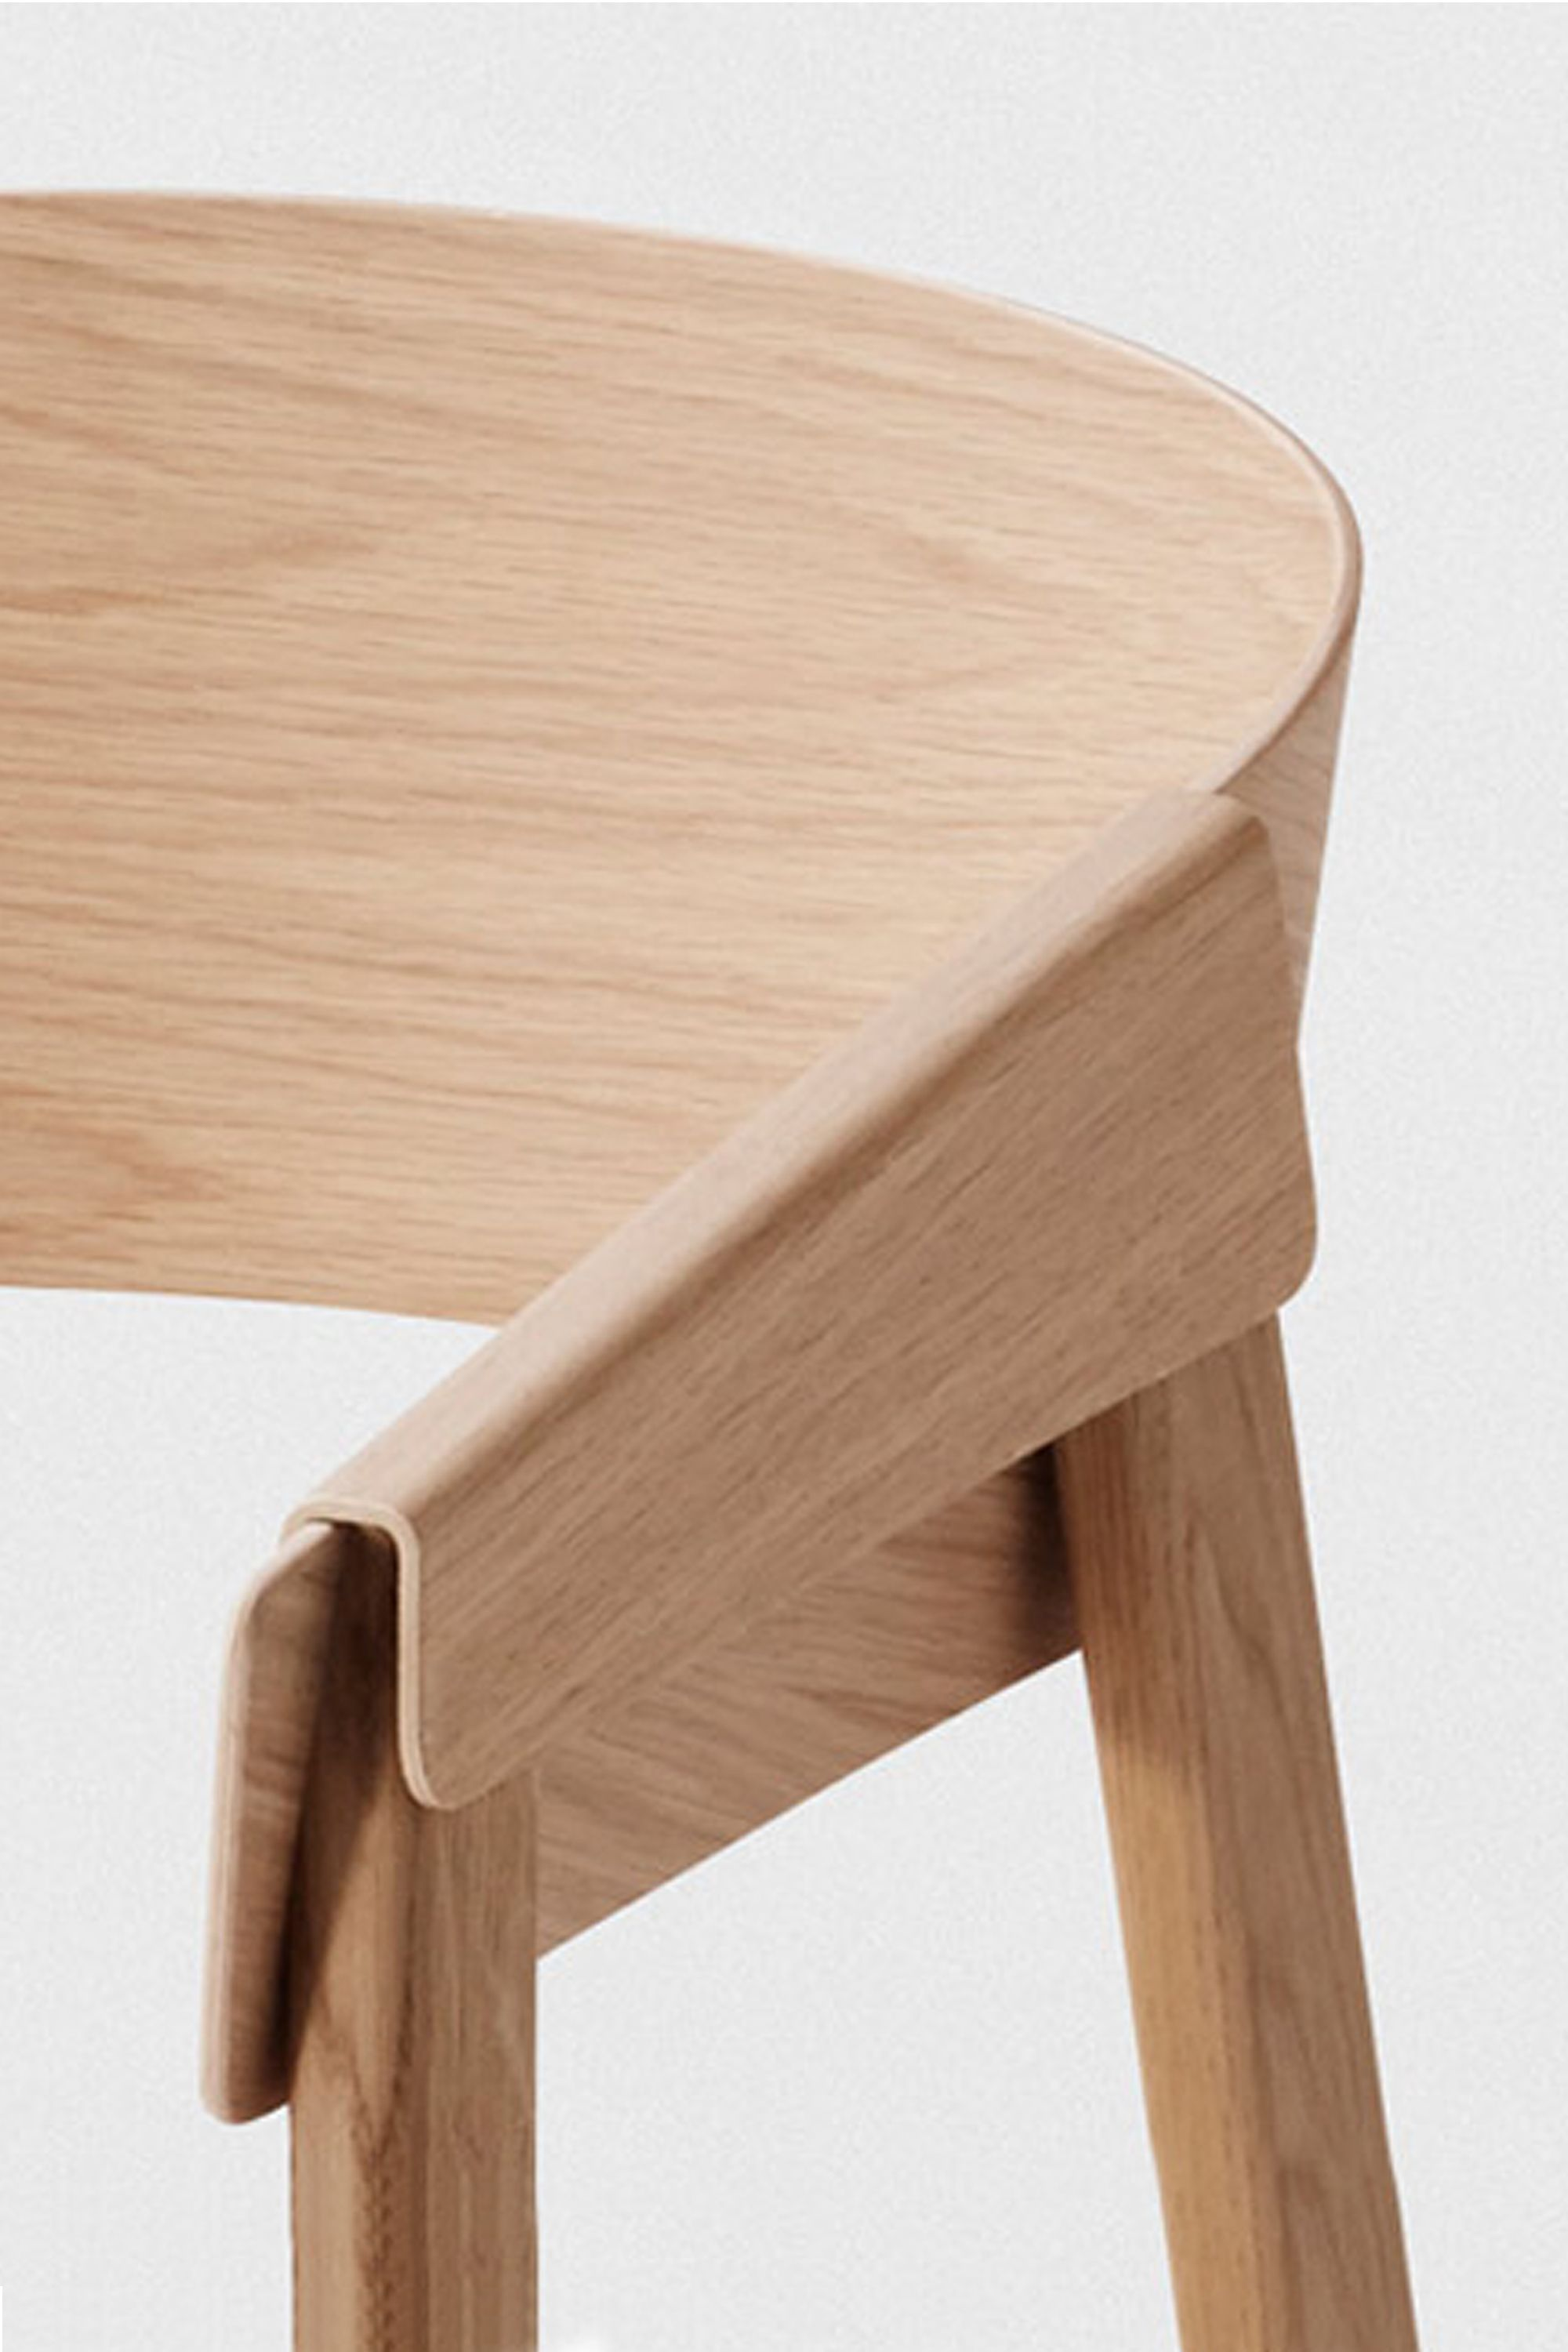 Muuto Cover Chair In Oak Beautiful Scandinavian Designs At Nordic New From Www Nor Scandinavian Furniture Design Nordic Furniture Classic Furniture Design